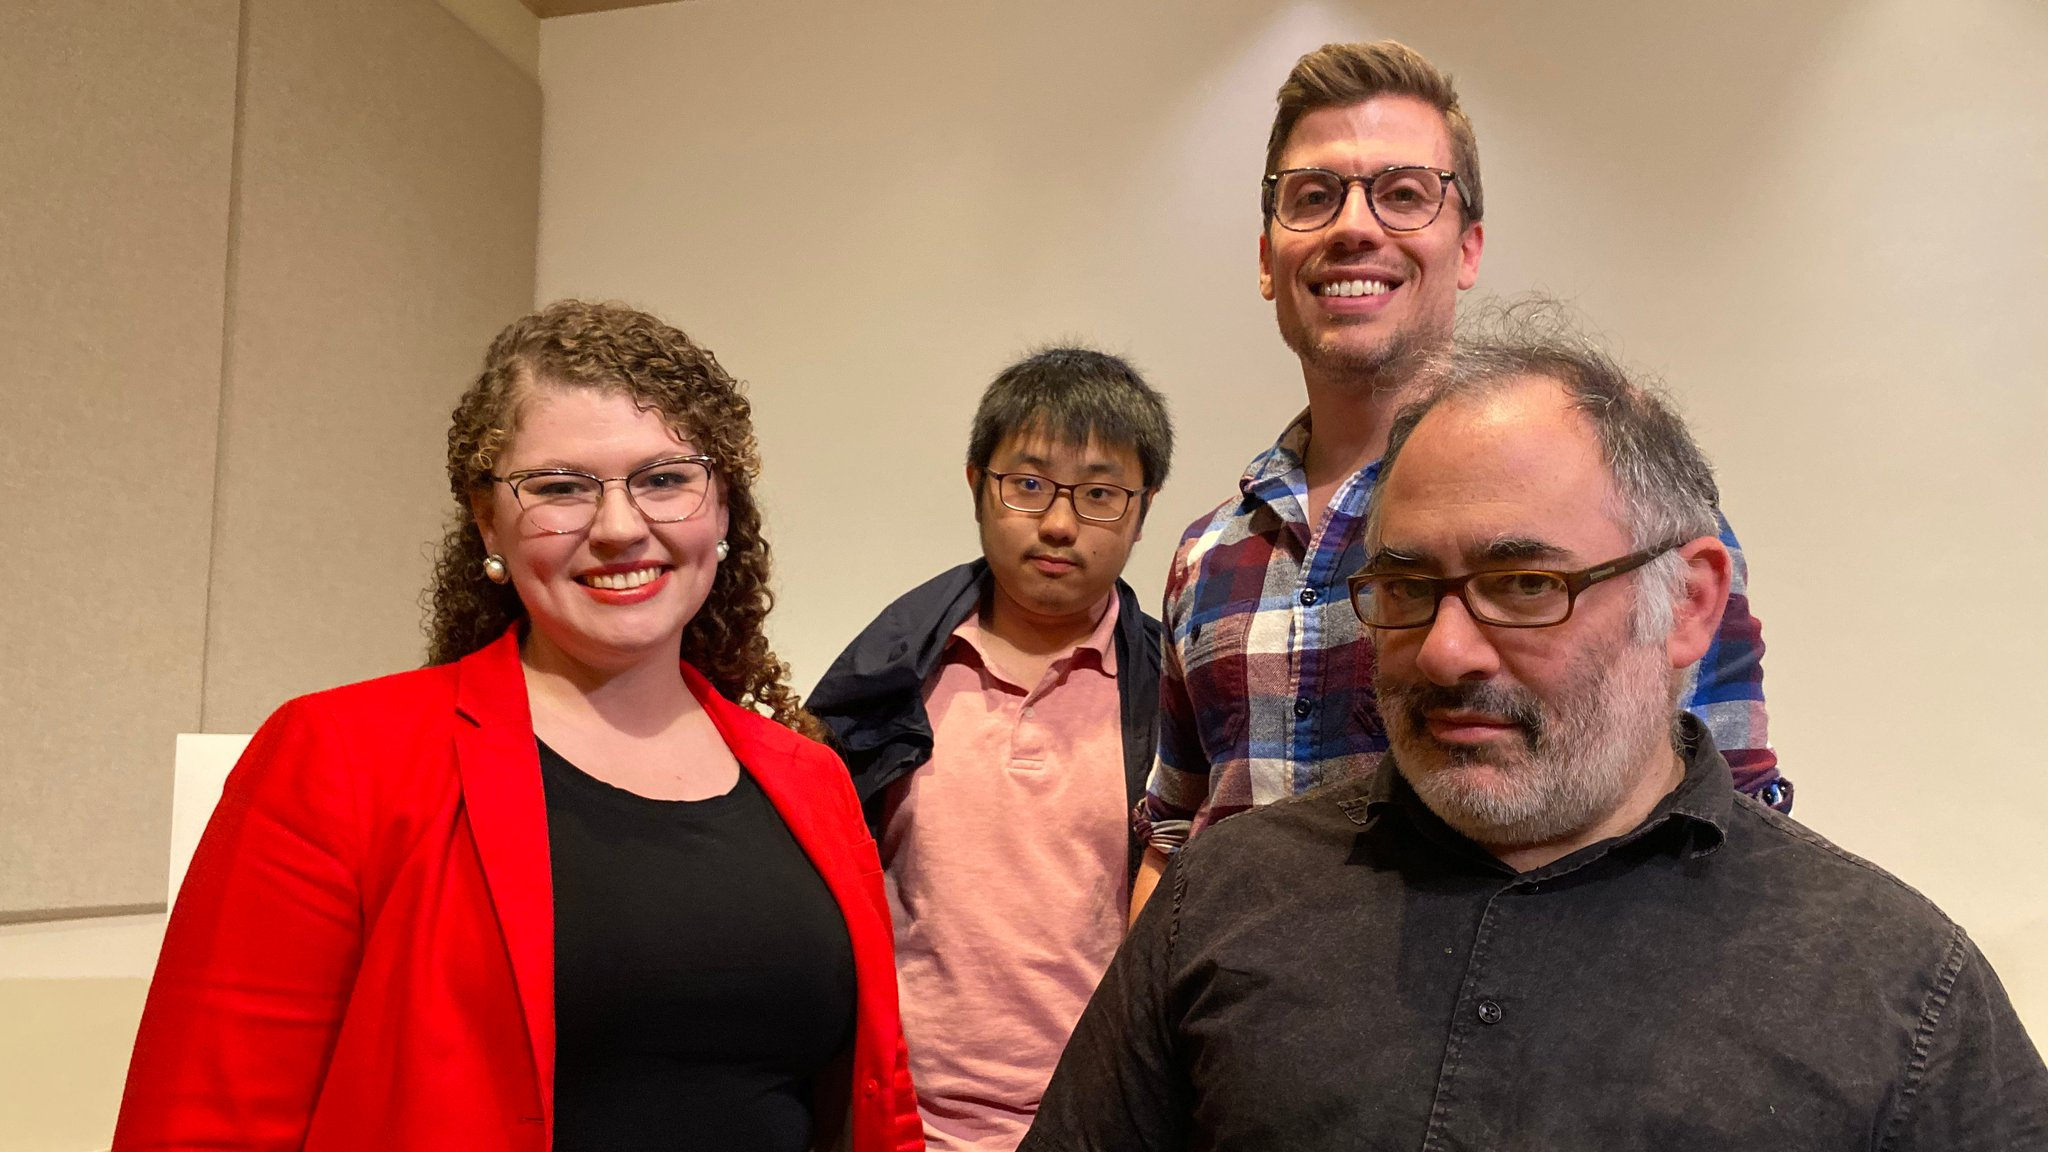 Sarah Reiff Conell, Lingdong Huang, Matthew Lincoln, and Golan Levin at the National Gallery of Art, October 25, 2019